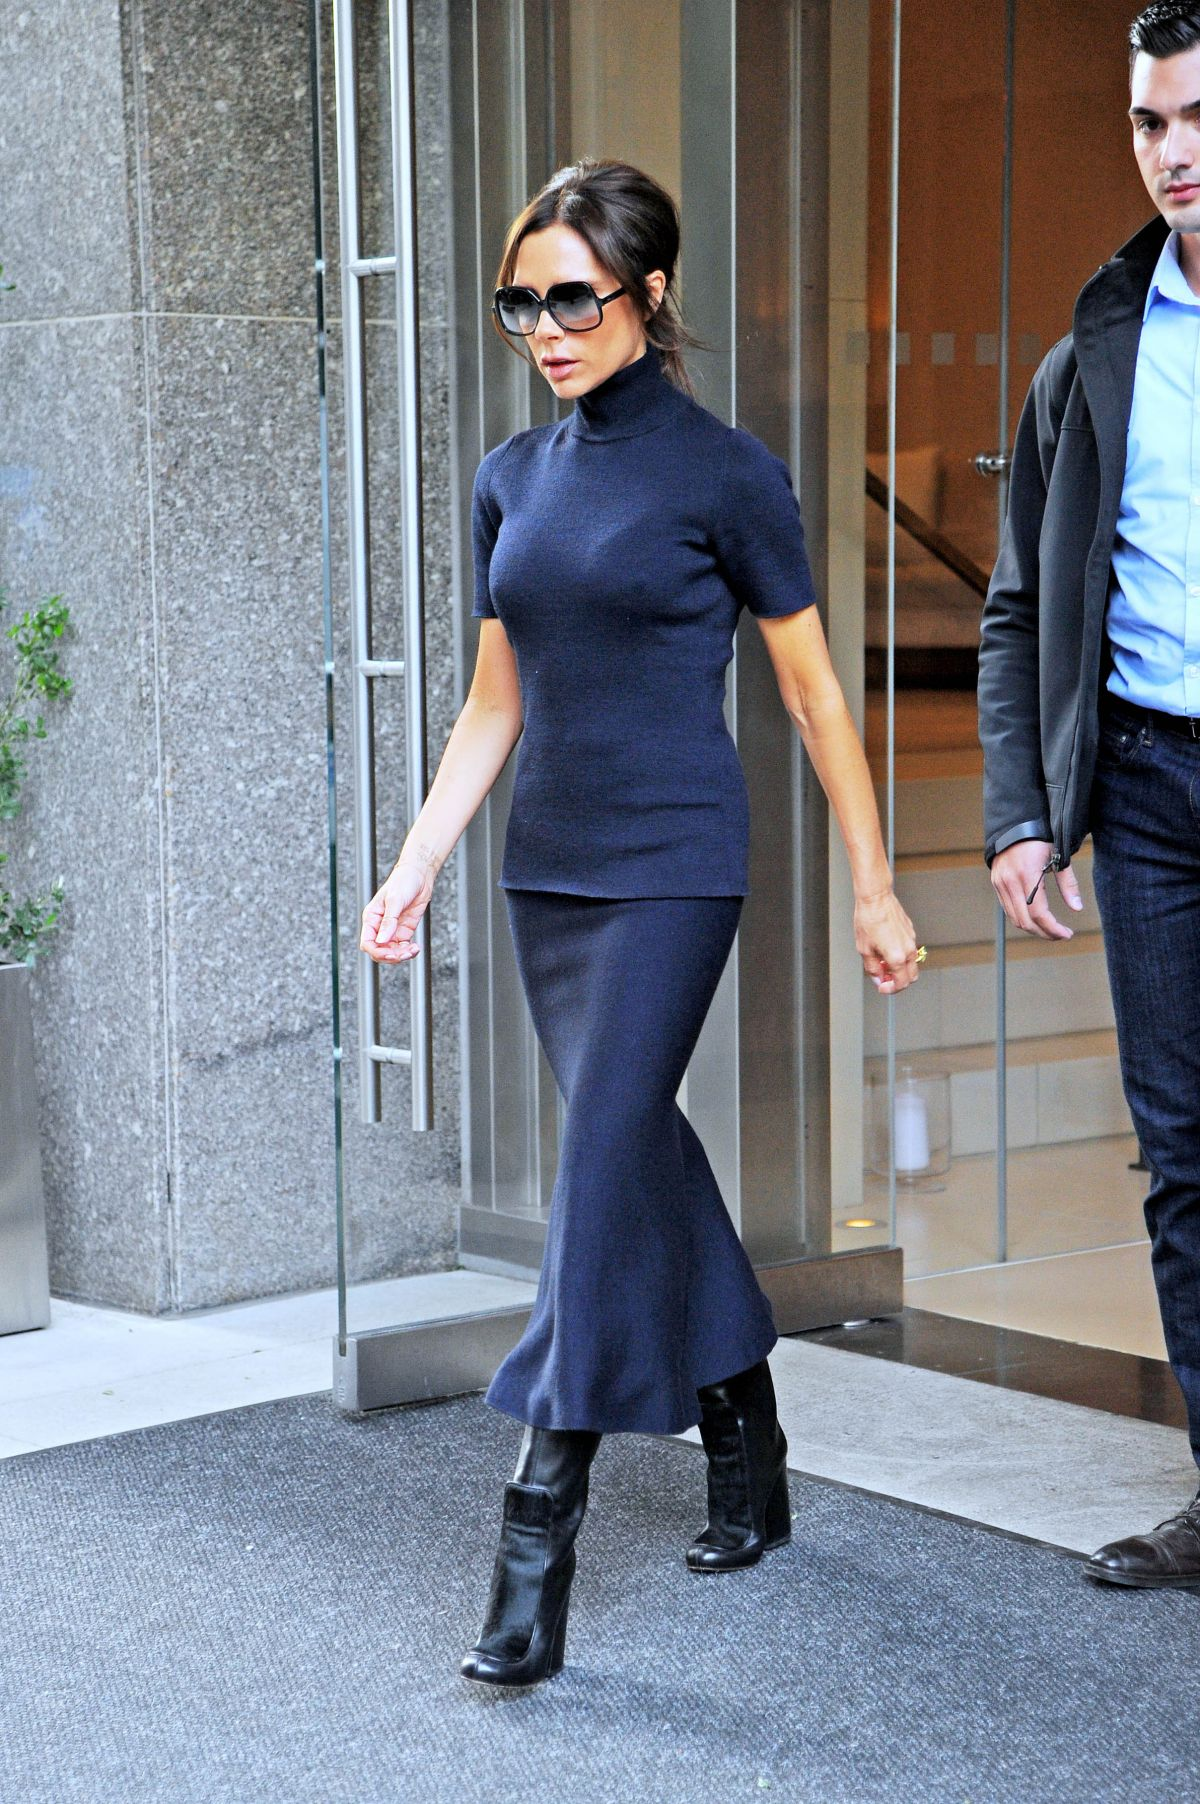 Victoria Beckham Out And About In New York 10 27 2015